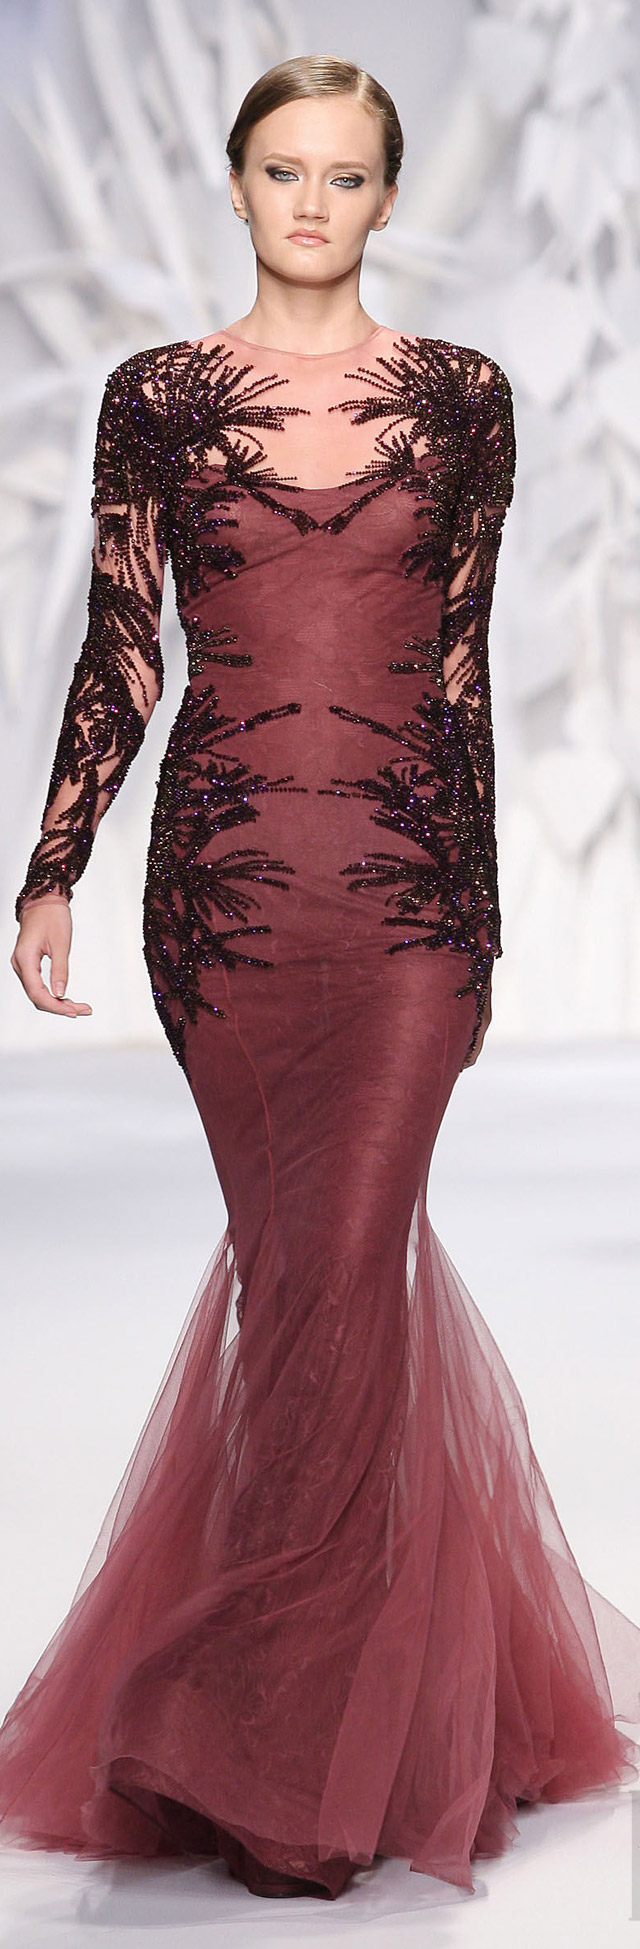 Abed Mahfouz Haute Couture Fall-Winter 2013-2014 (1)